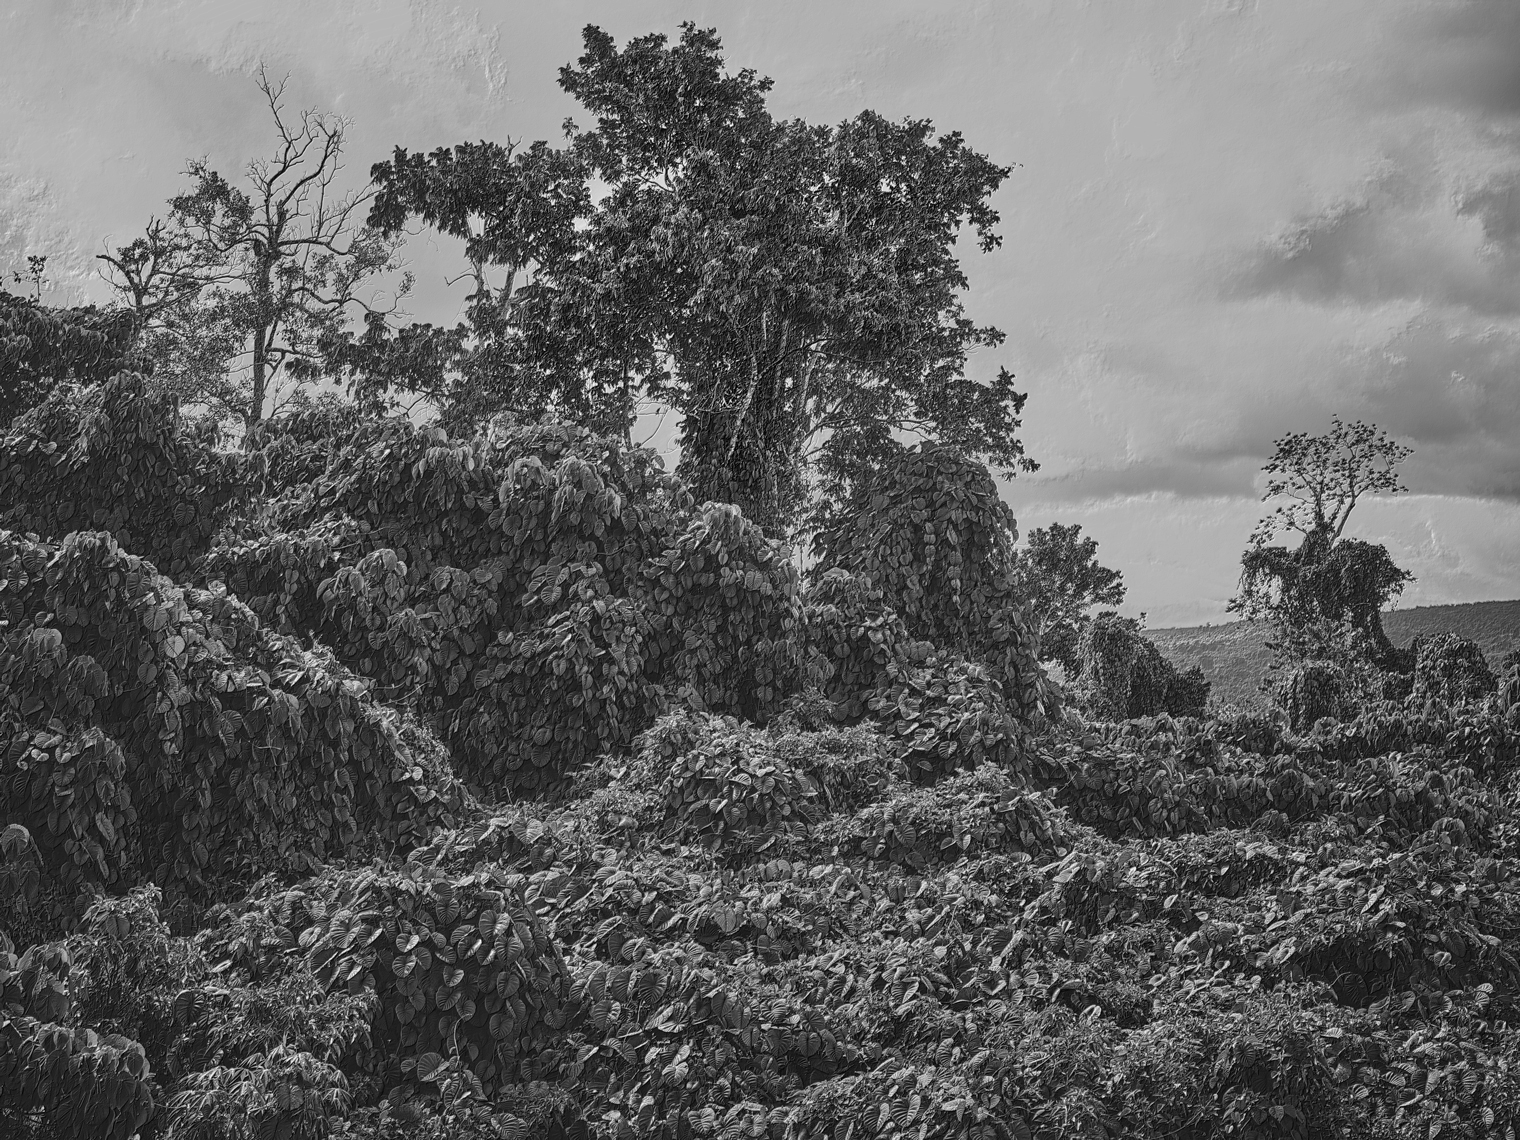 Jon Wyatt Photography - Fault Line IX - A tsunami of vegetation - invasive vines in samoa